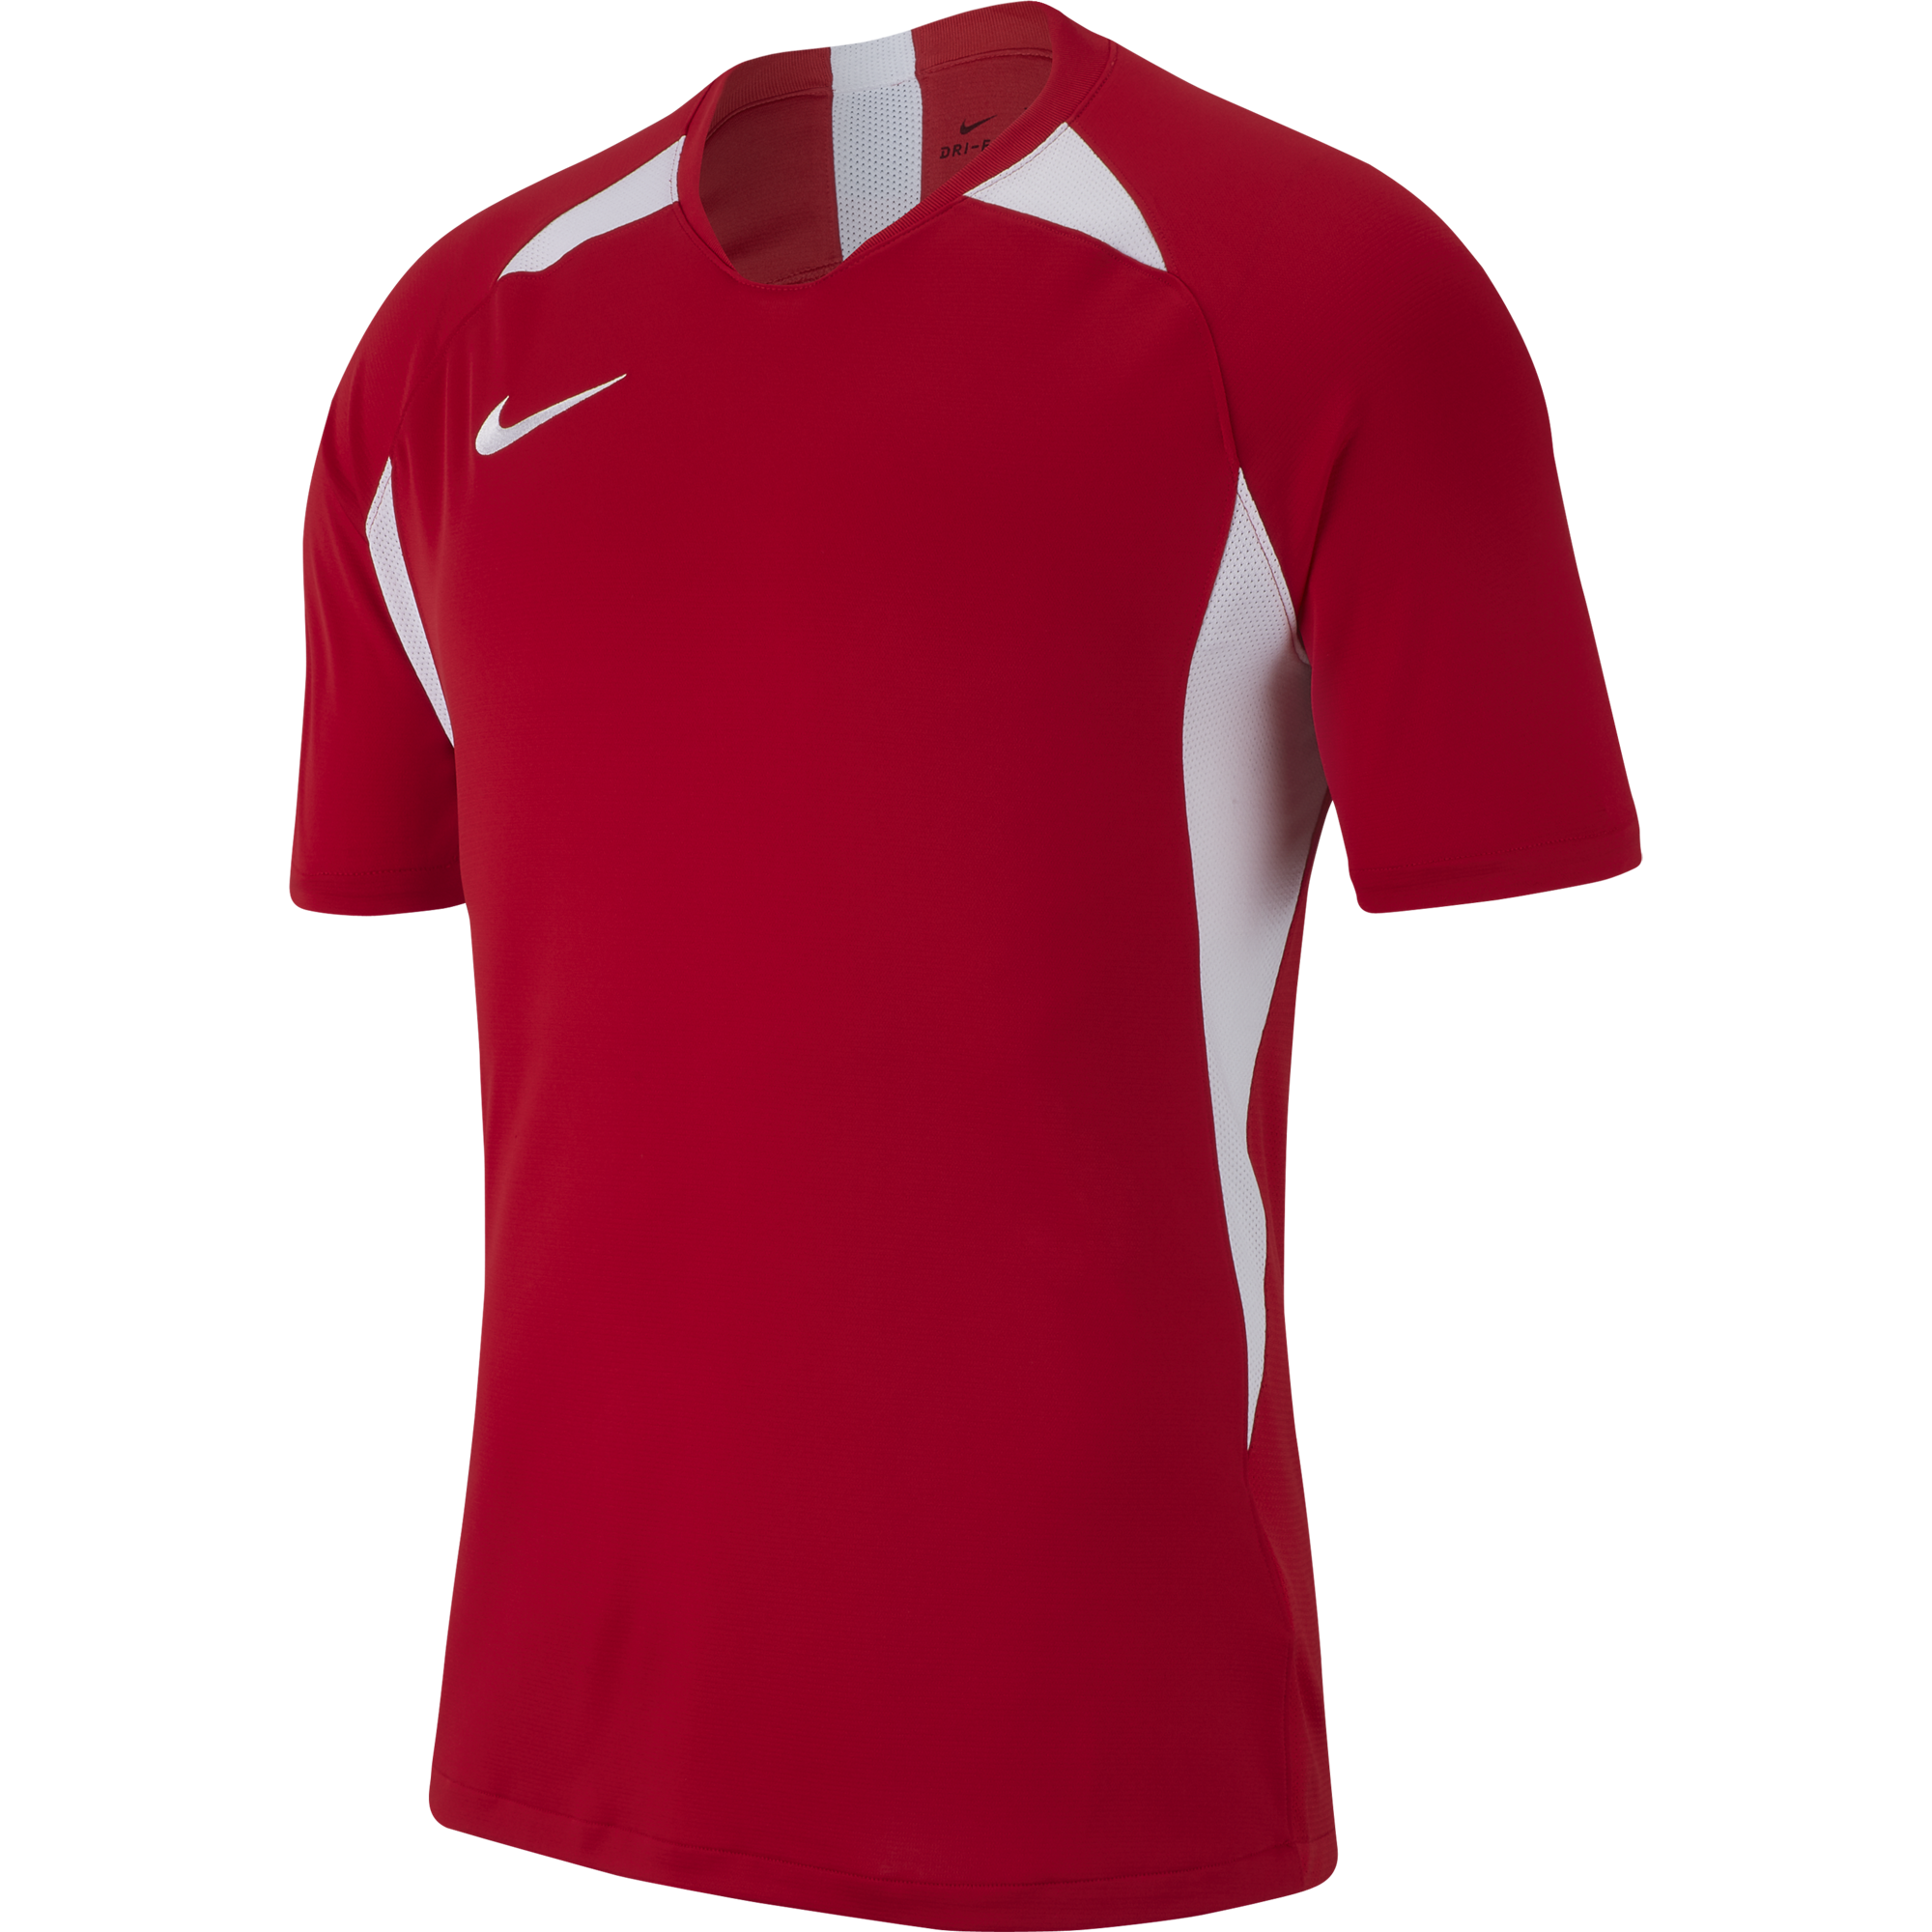 Nike Legend jersey (uni red/white)